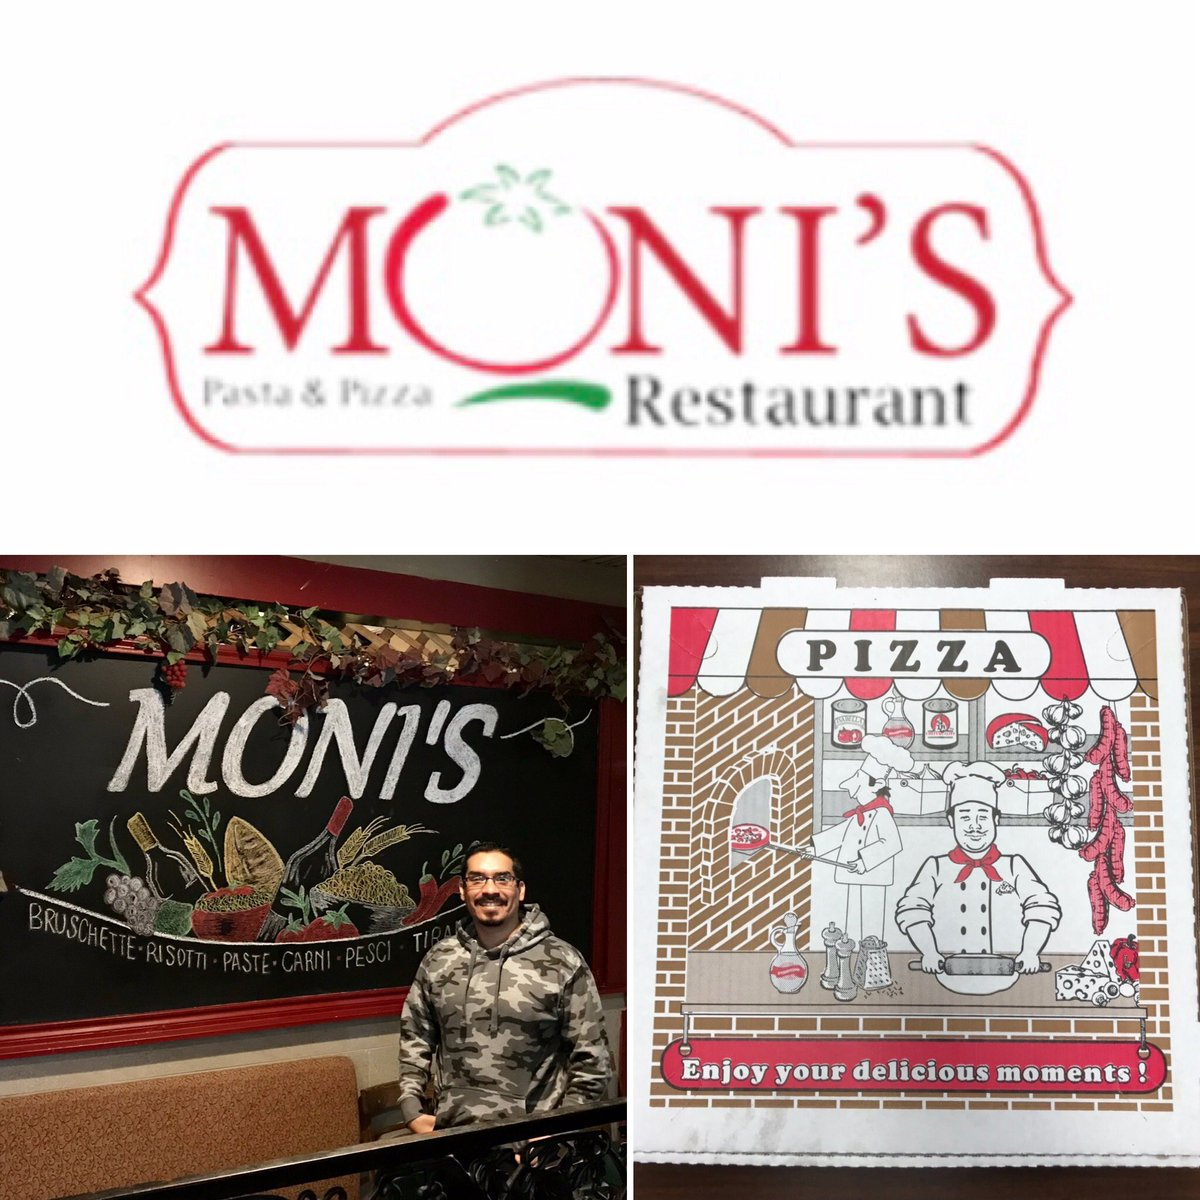 Supporting Small Business Saturday!  Thank you Moni's Pasta & Pizza for today's team lunch! The food was delicious! 👍🏽  We know you and your family work hard for your business!  #smallbusinesssaturday #pizza #lunch #myagentrodolfo #insuranceagent #statefarm #insurance